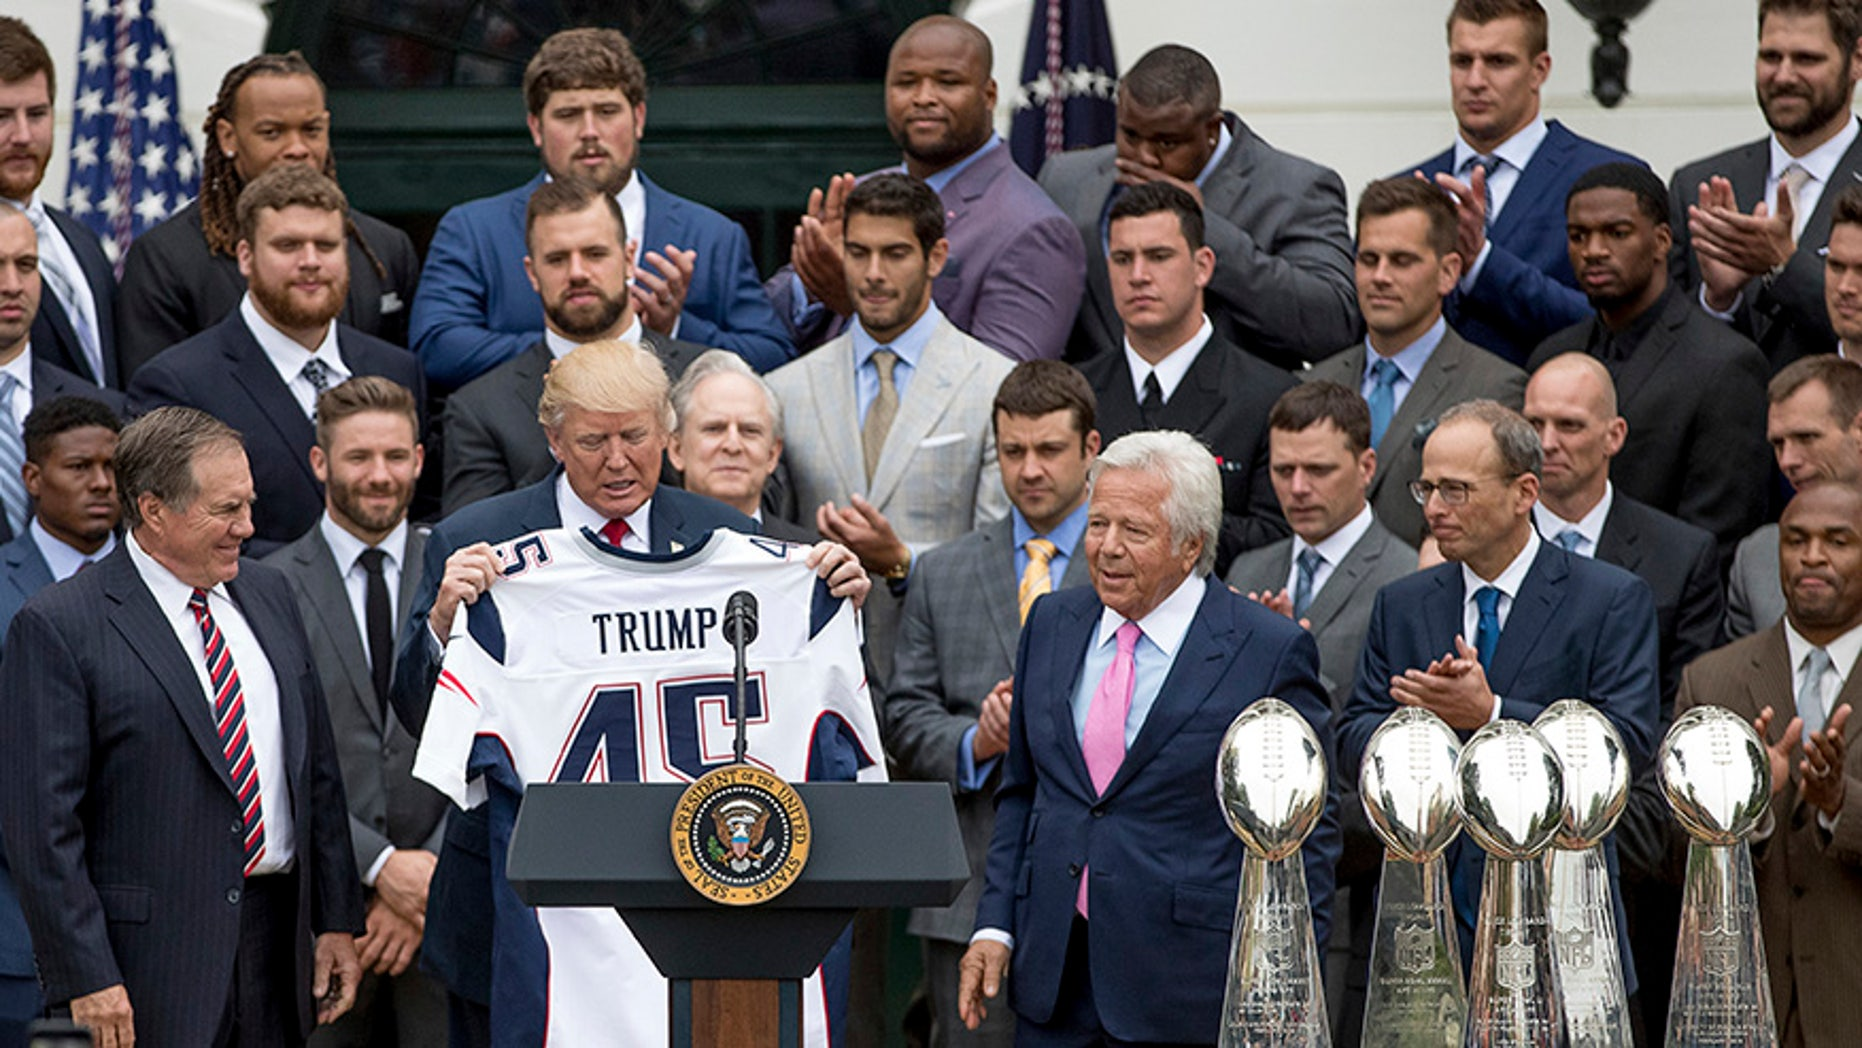 President Donald Trump is presented with a New England Patriots jersey by Patriots head coach Bill Belichick, left, and New England Patriots owner Robert Kraft, center, during a ceremony on the South Lawn of the White House in Washington, Wednesday, April 19, 2017, where the president honored the Super Bowl Champion New England Patriots for their Super Bowl LI victory. Also pictured is New England Patriots president Jonathan Kraft, second from right. (AP Photo/Andrew Harnik)